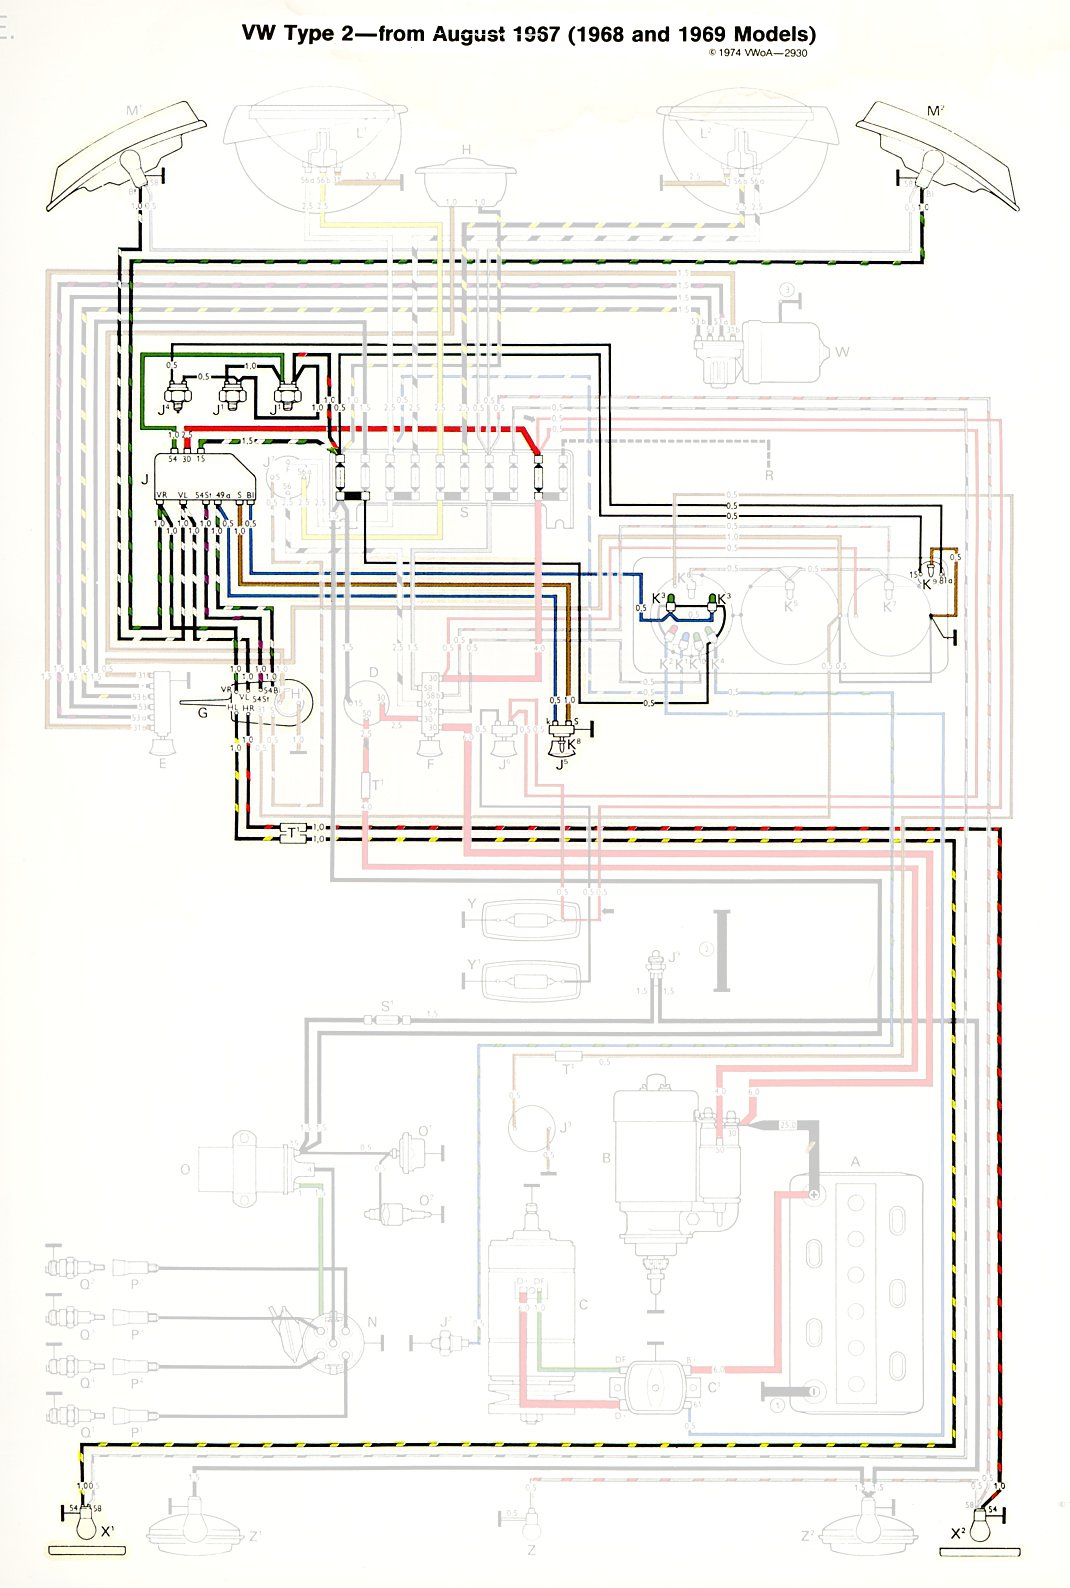 1968 69Bus_TurnBrake c6 corvette wiring diagrams dolgular com 2012 Chevy Sonic Wiring Diagram at soozxer.org